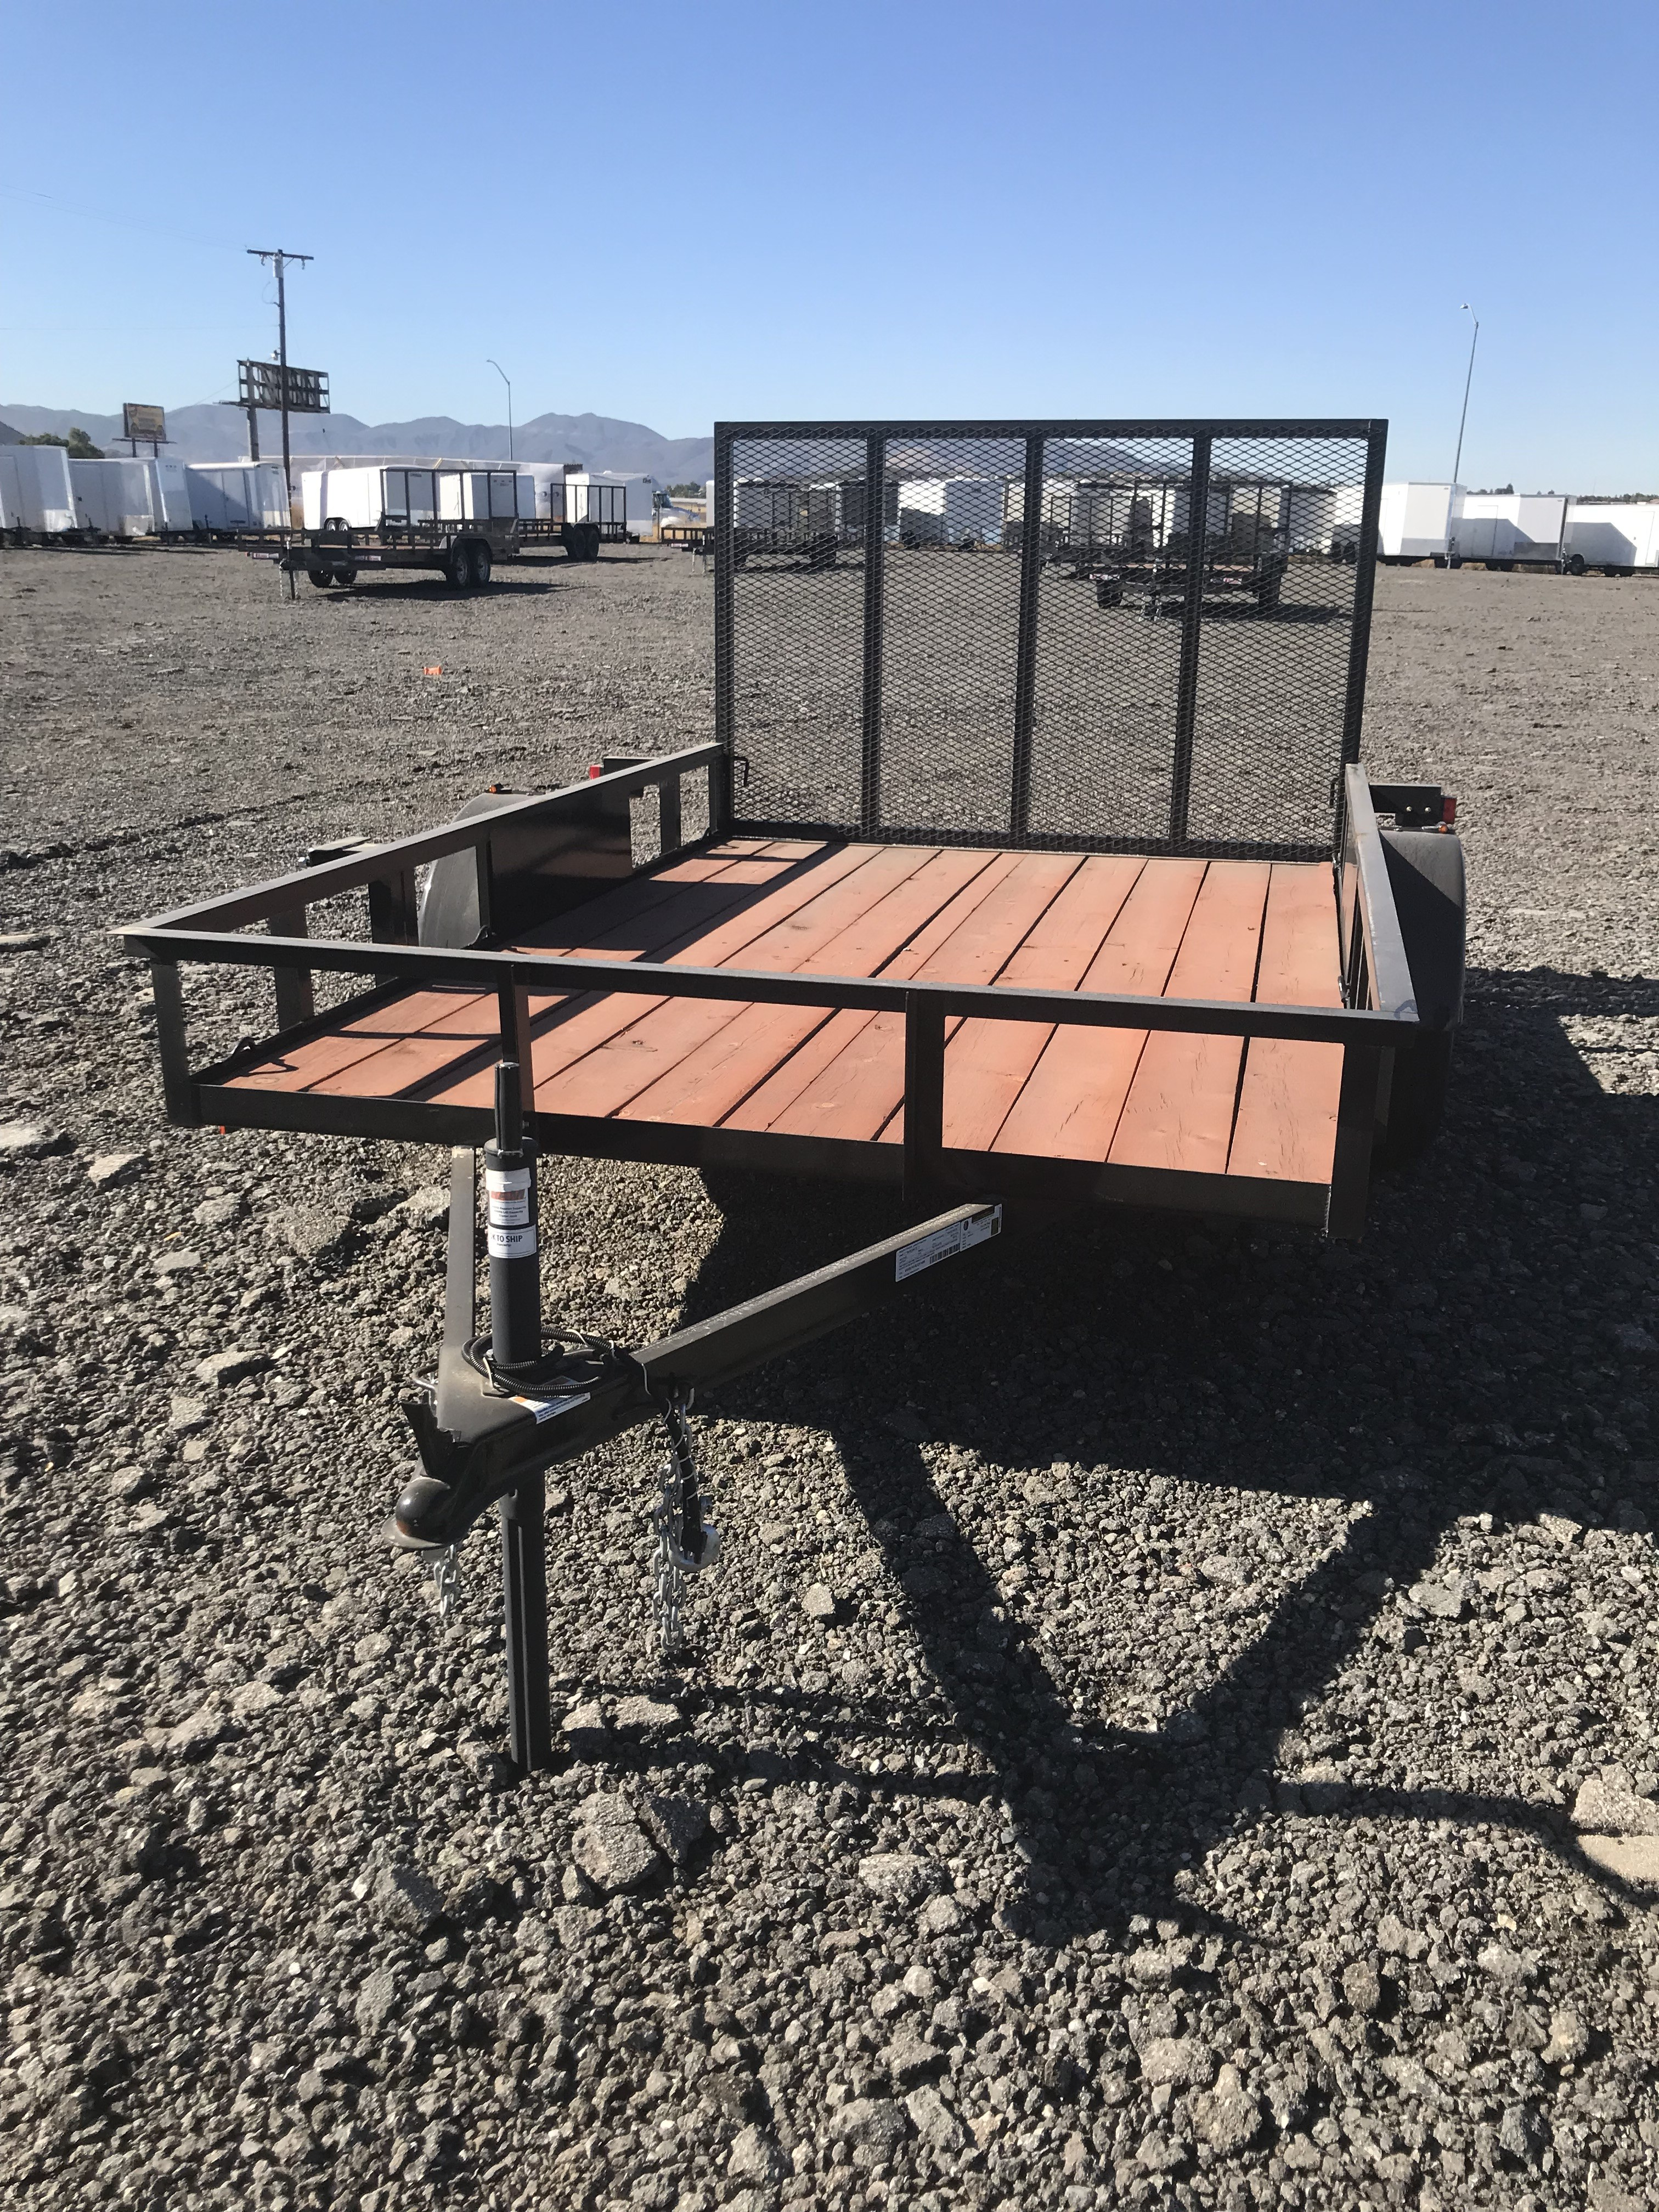 New, 2021, Carson Trailer, 8.5x16' Tandem Axle RV Special in Beaumont, CA, Utility Trailers